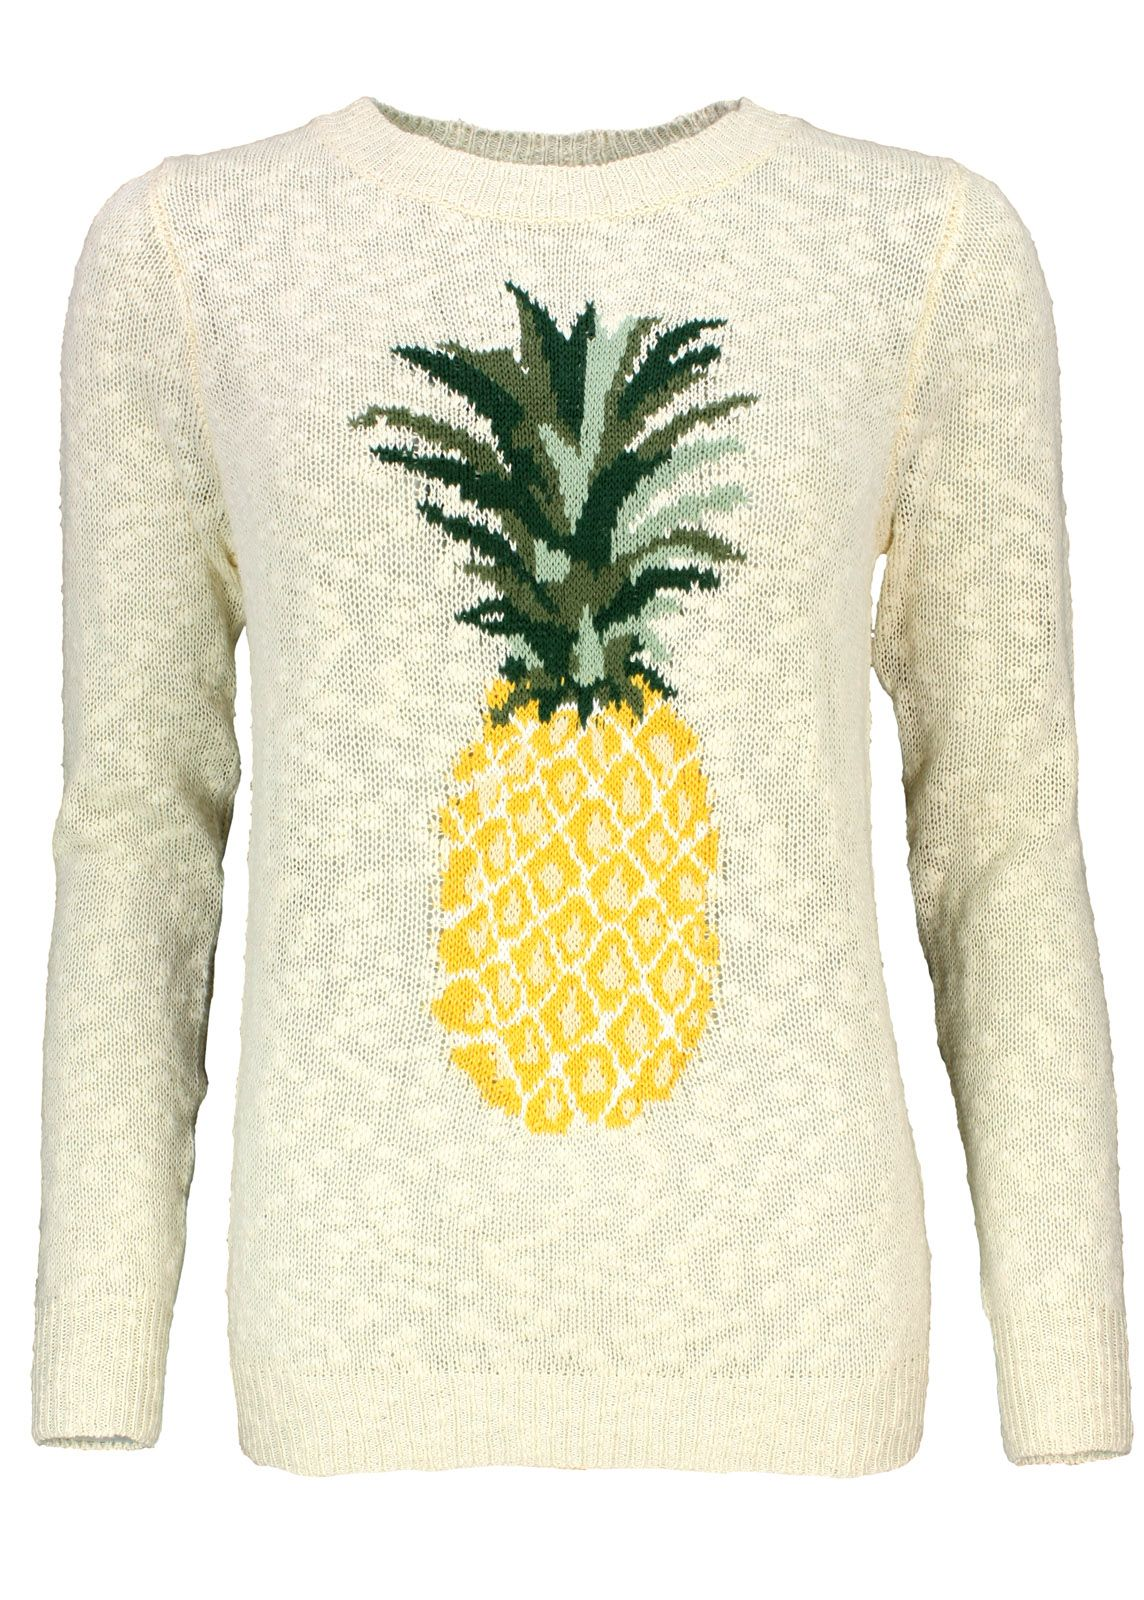 Sugarhill Boutique Pullover Pineapple Sweater